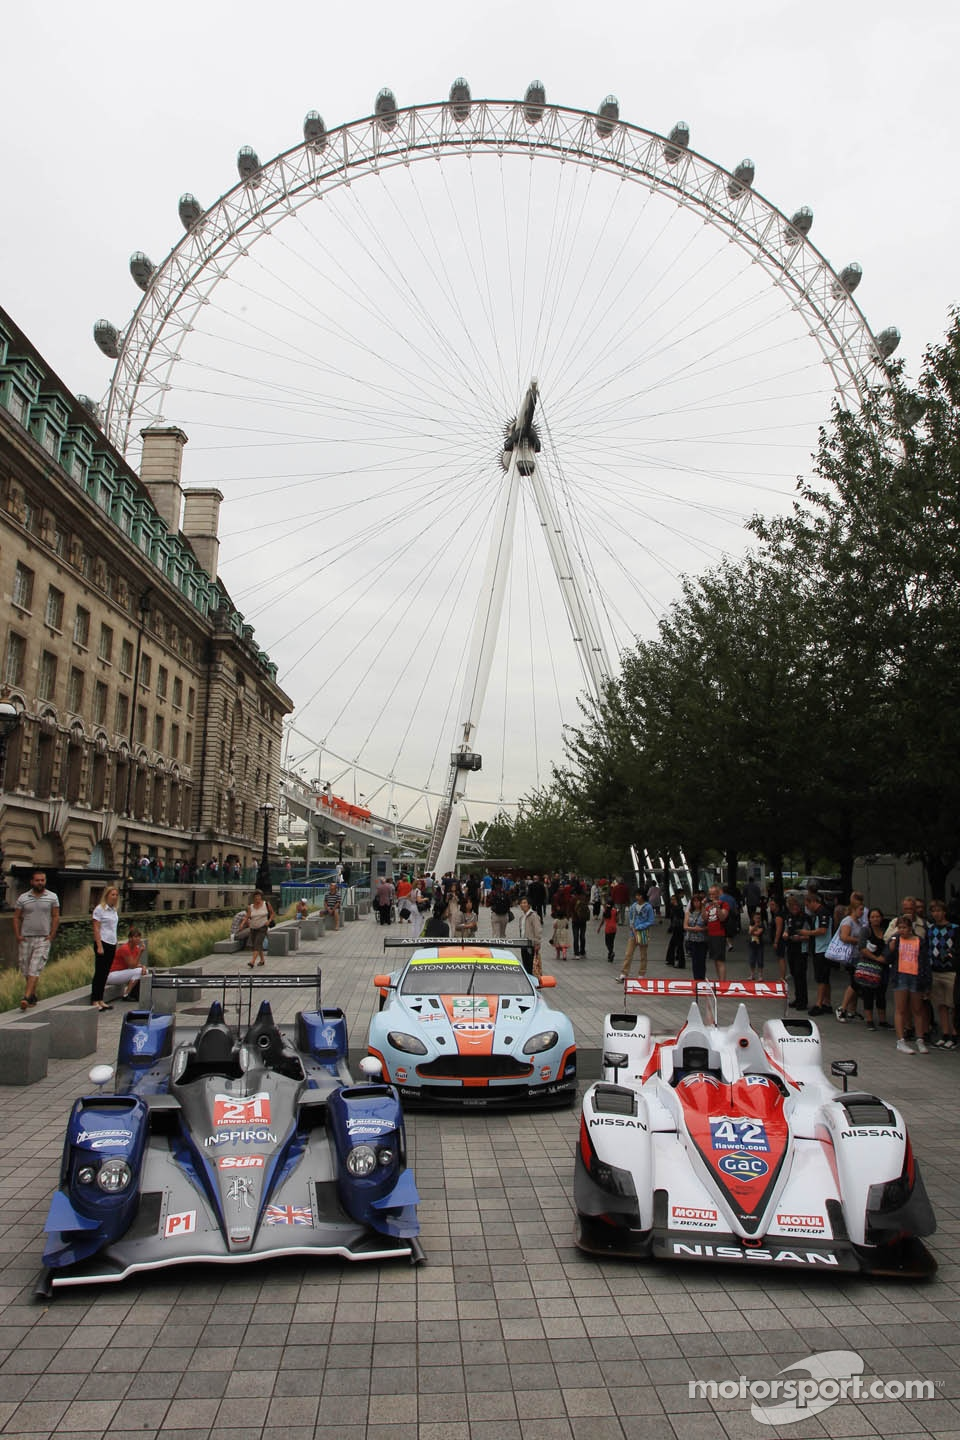 Cars lined up for a photoshoot near the London Eye